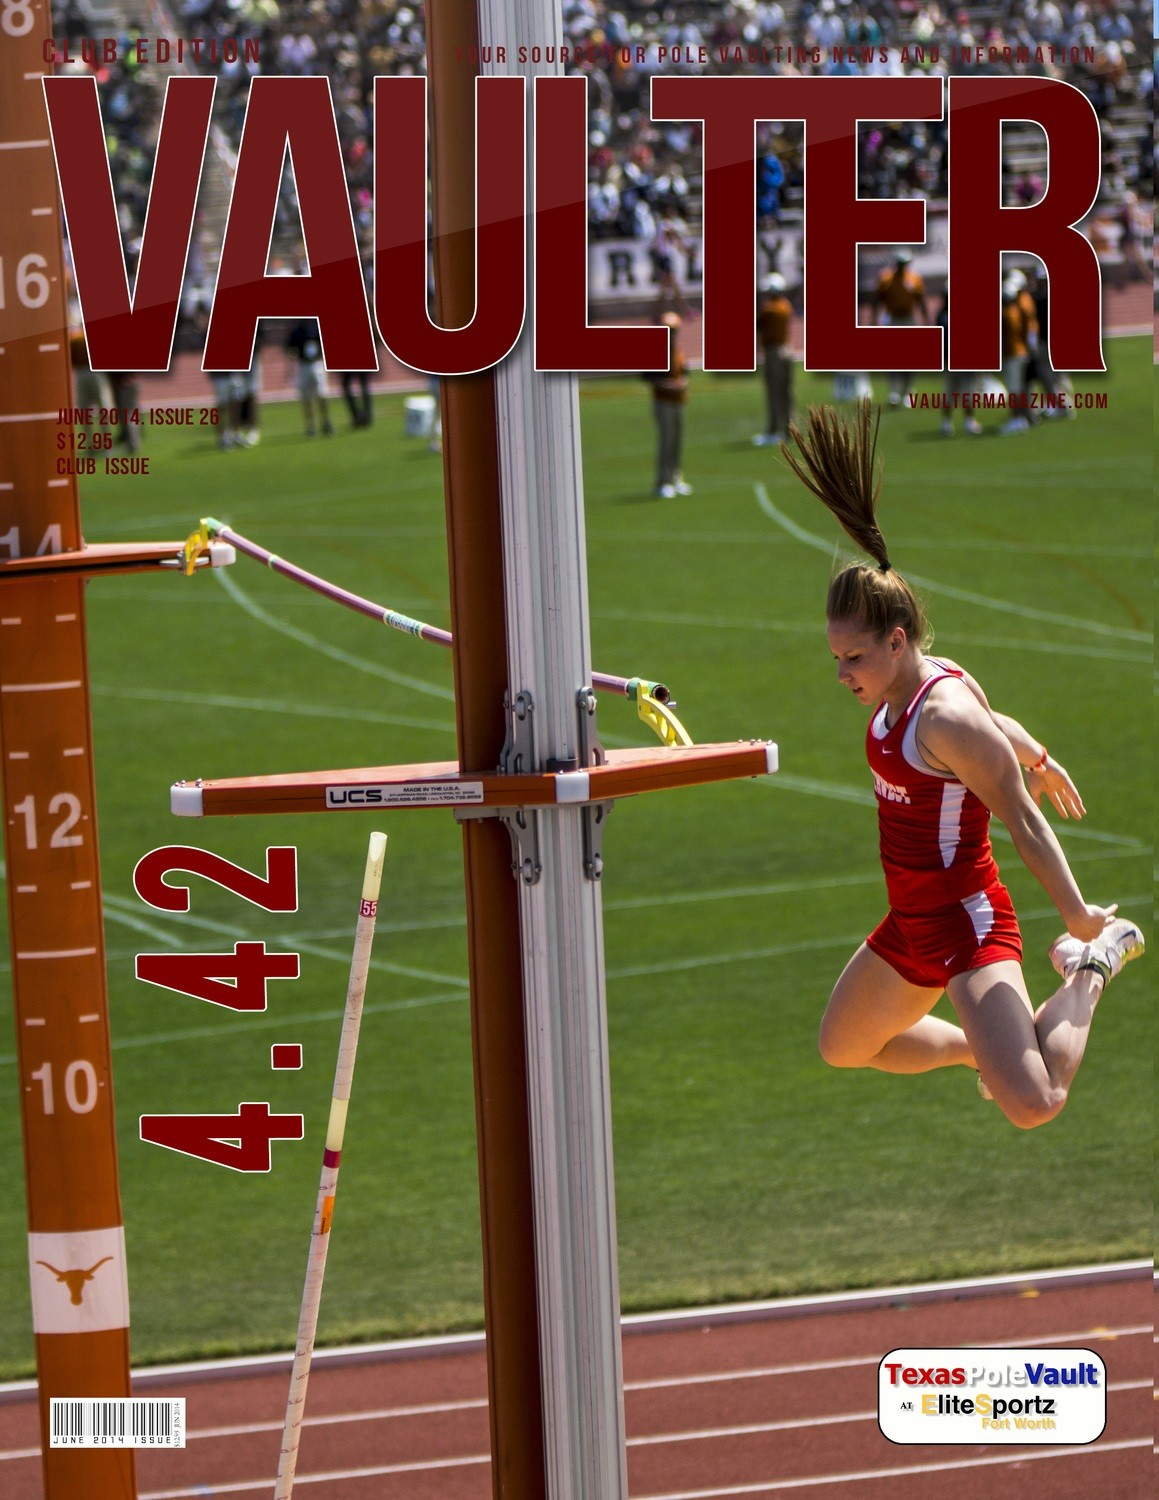 June 2014 Desiree Freier 4.42 Issue of VAULTER Magazine